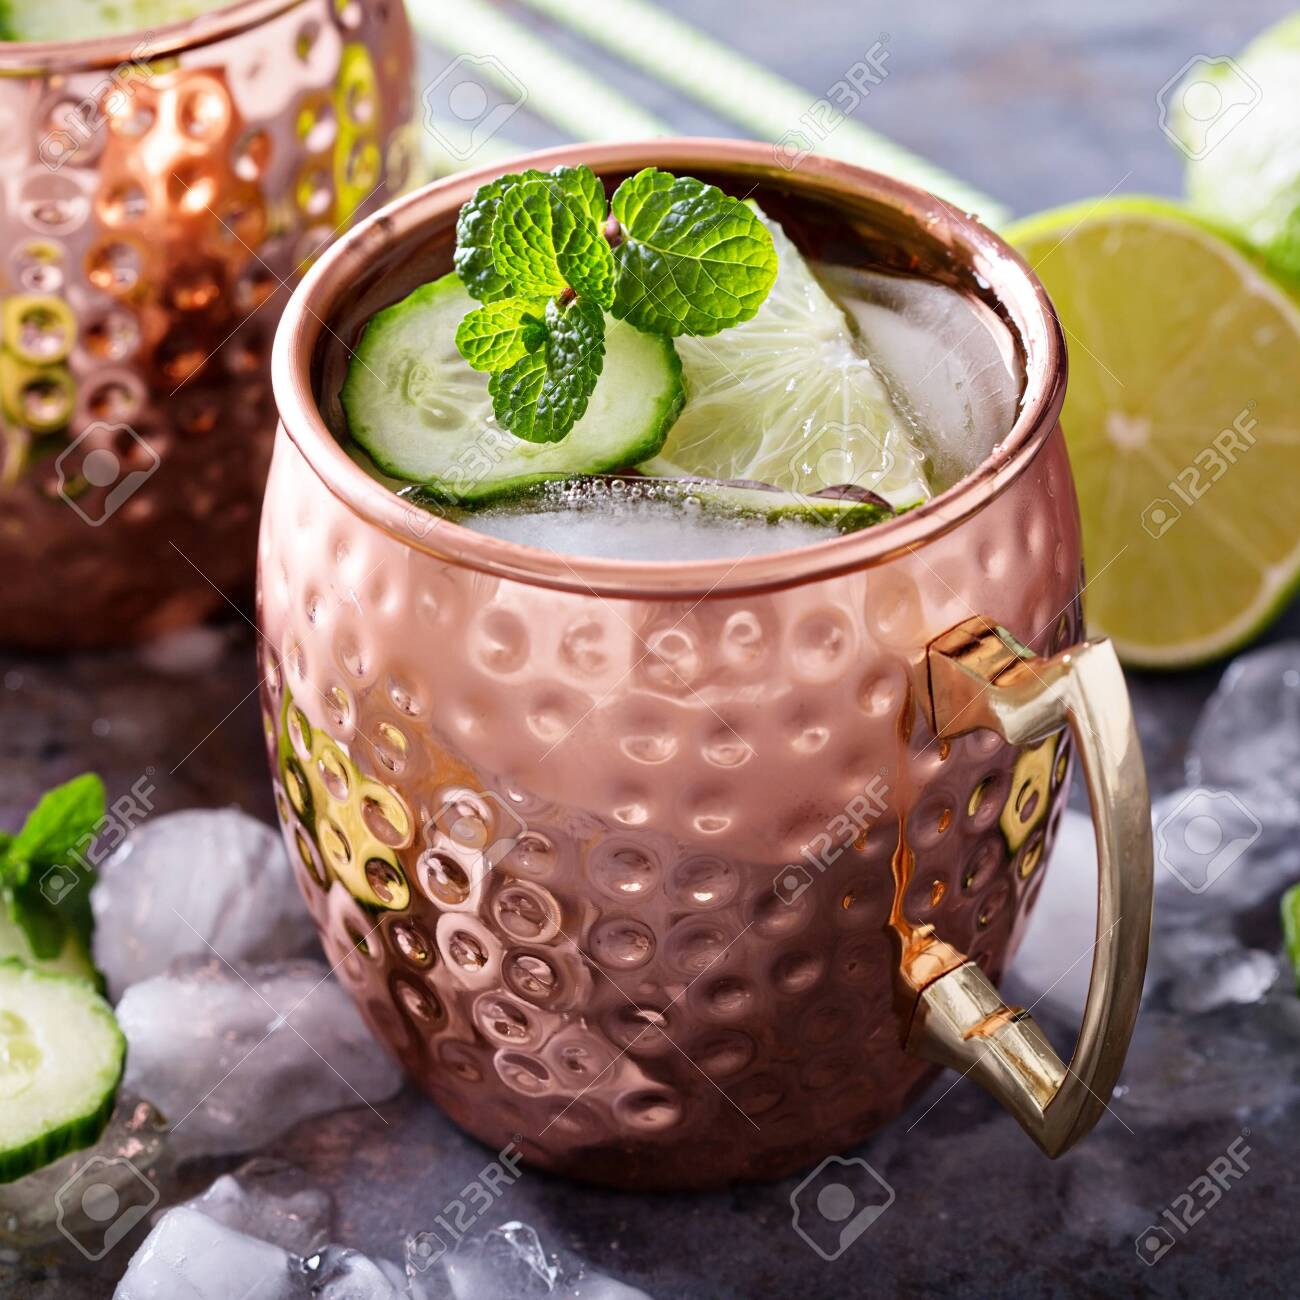 Moscow mule cocktail with lime and cucumber - 122038510